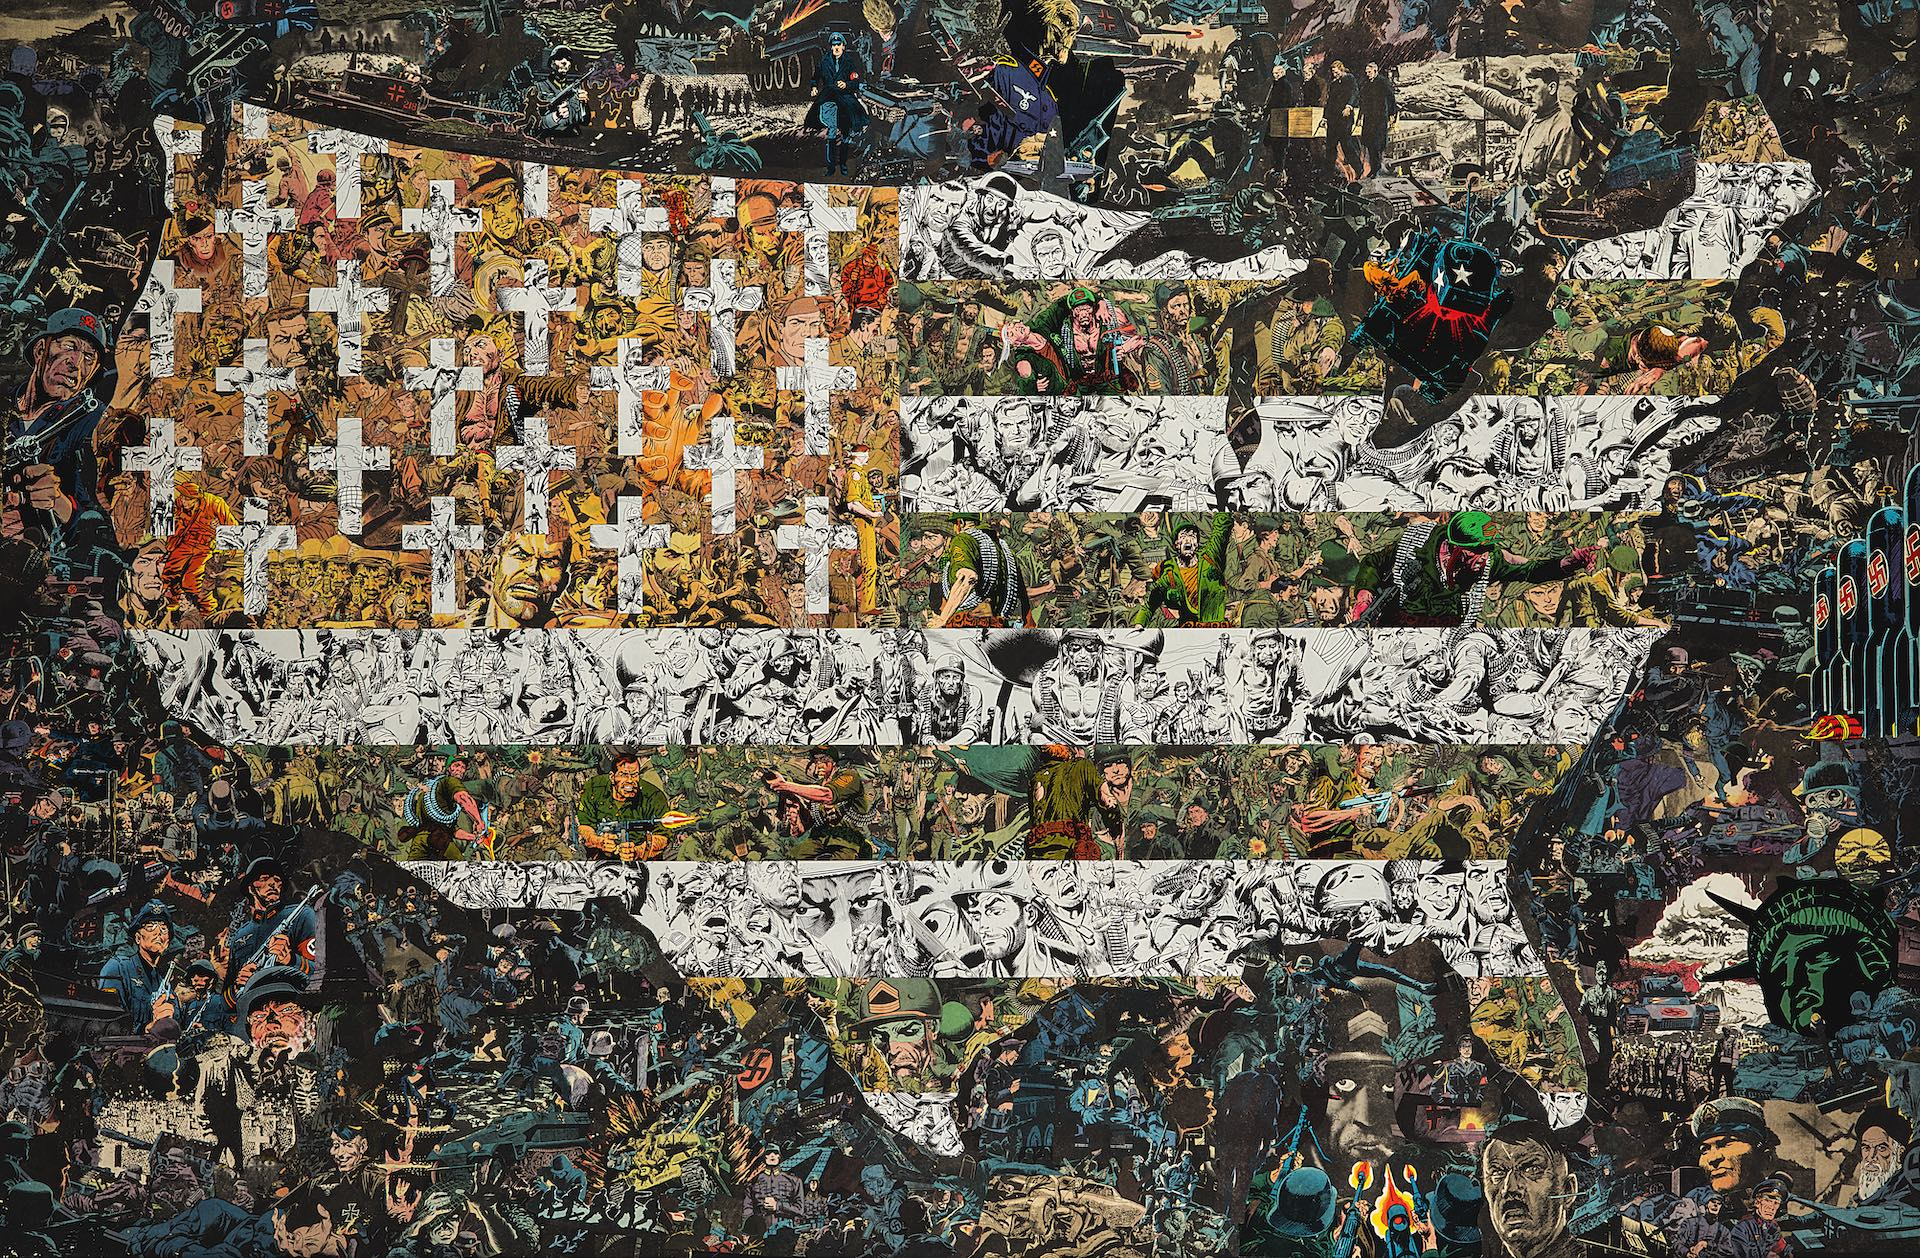 Twilights Last Gleaming, 93 x 139 cm37 x 55 in (comic collage on wood), 2016.jpg